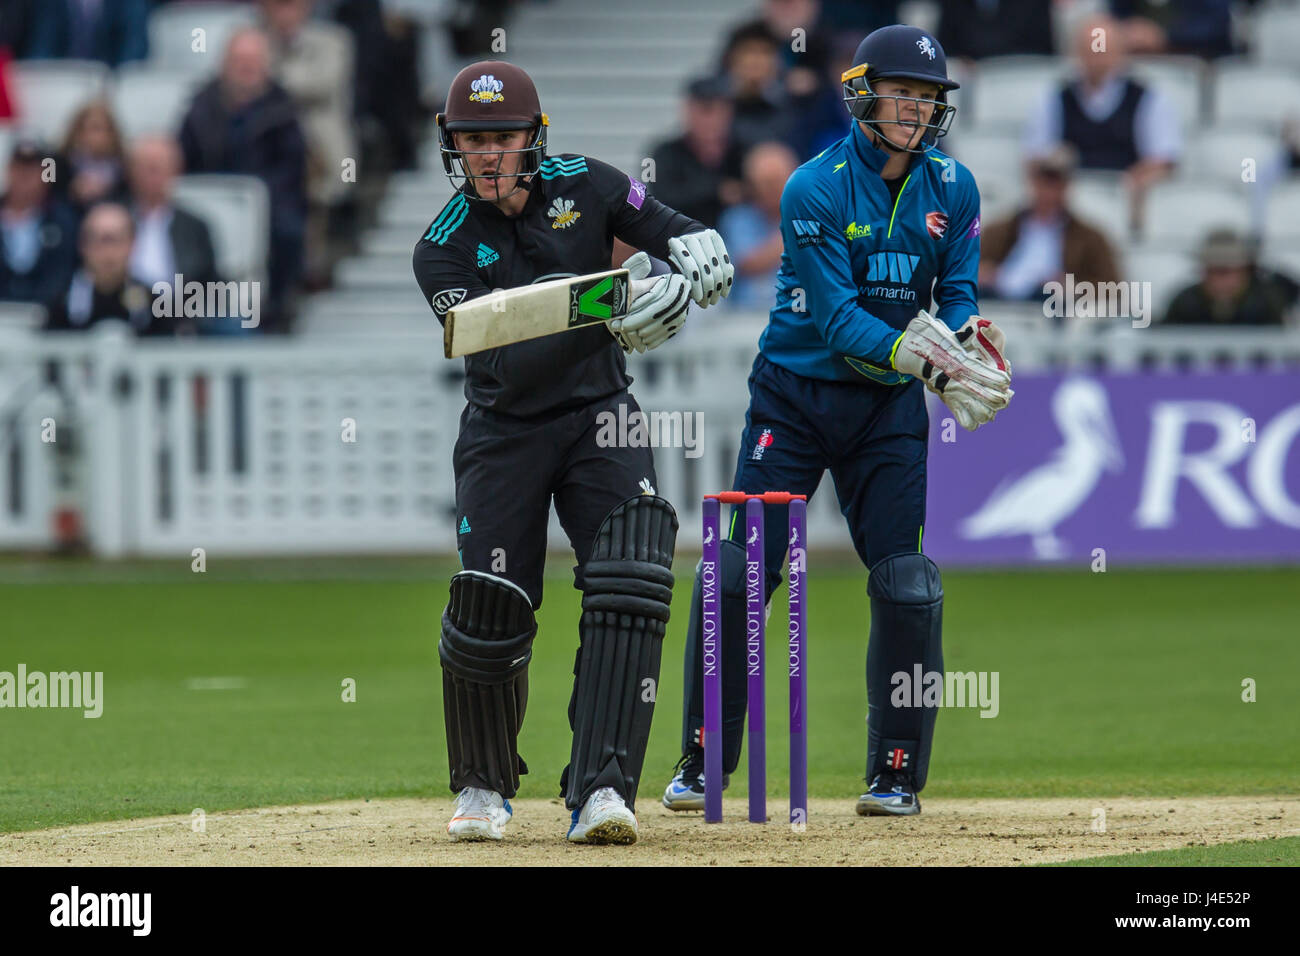 London, UK. 12th May, 2017.  Jason Roy batting for Surrey. Surrey v Kent in the Royal London One-Day Cup at the Stock Photo